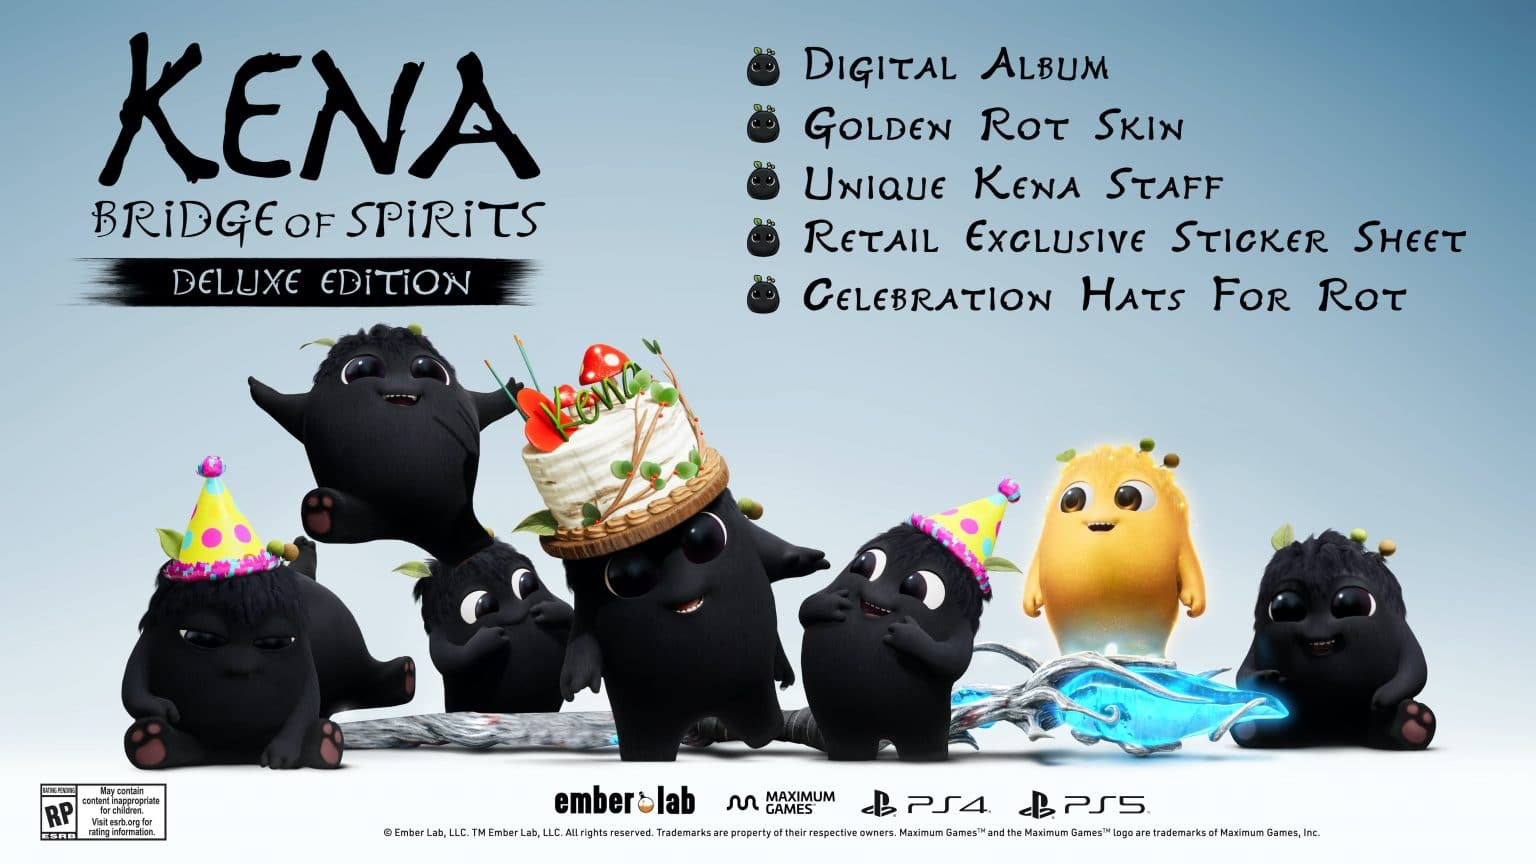 What's in the Deluxe Edition?